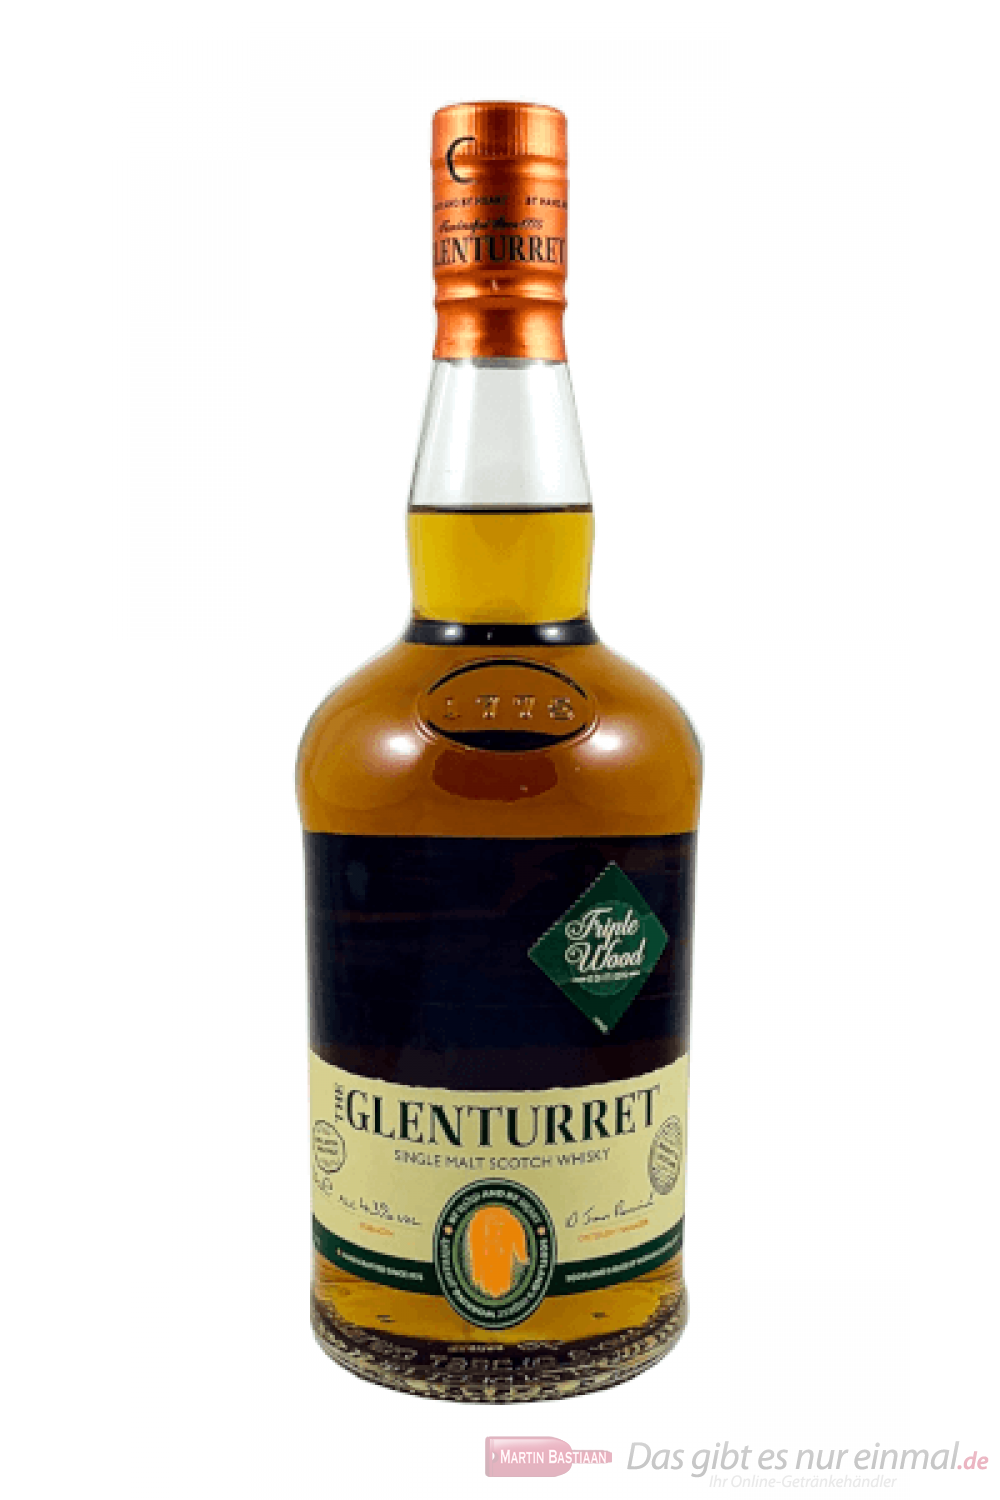 Glenturret Triplewood Single Malt Scotch Whisky 0,7l